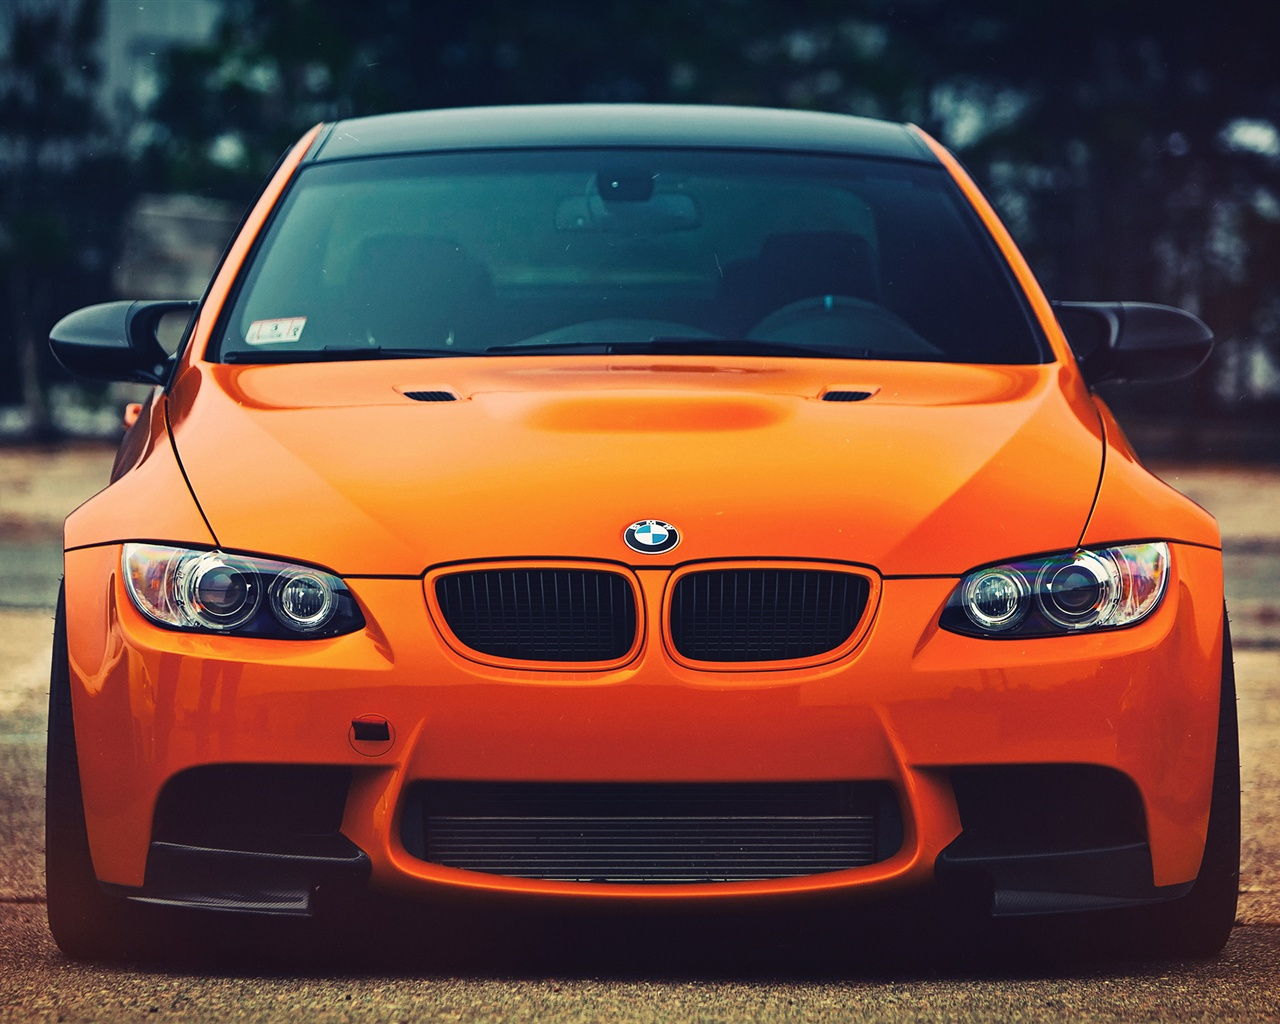 Wallpaper BMW M3 orange car front view 2560x1600 HD ...